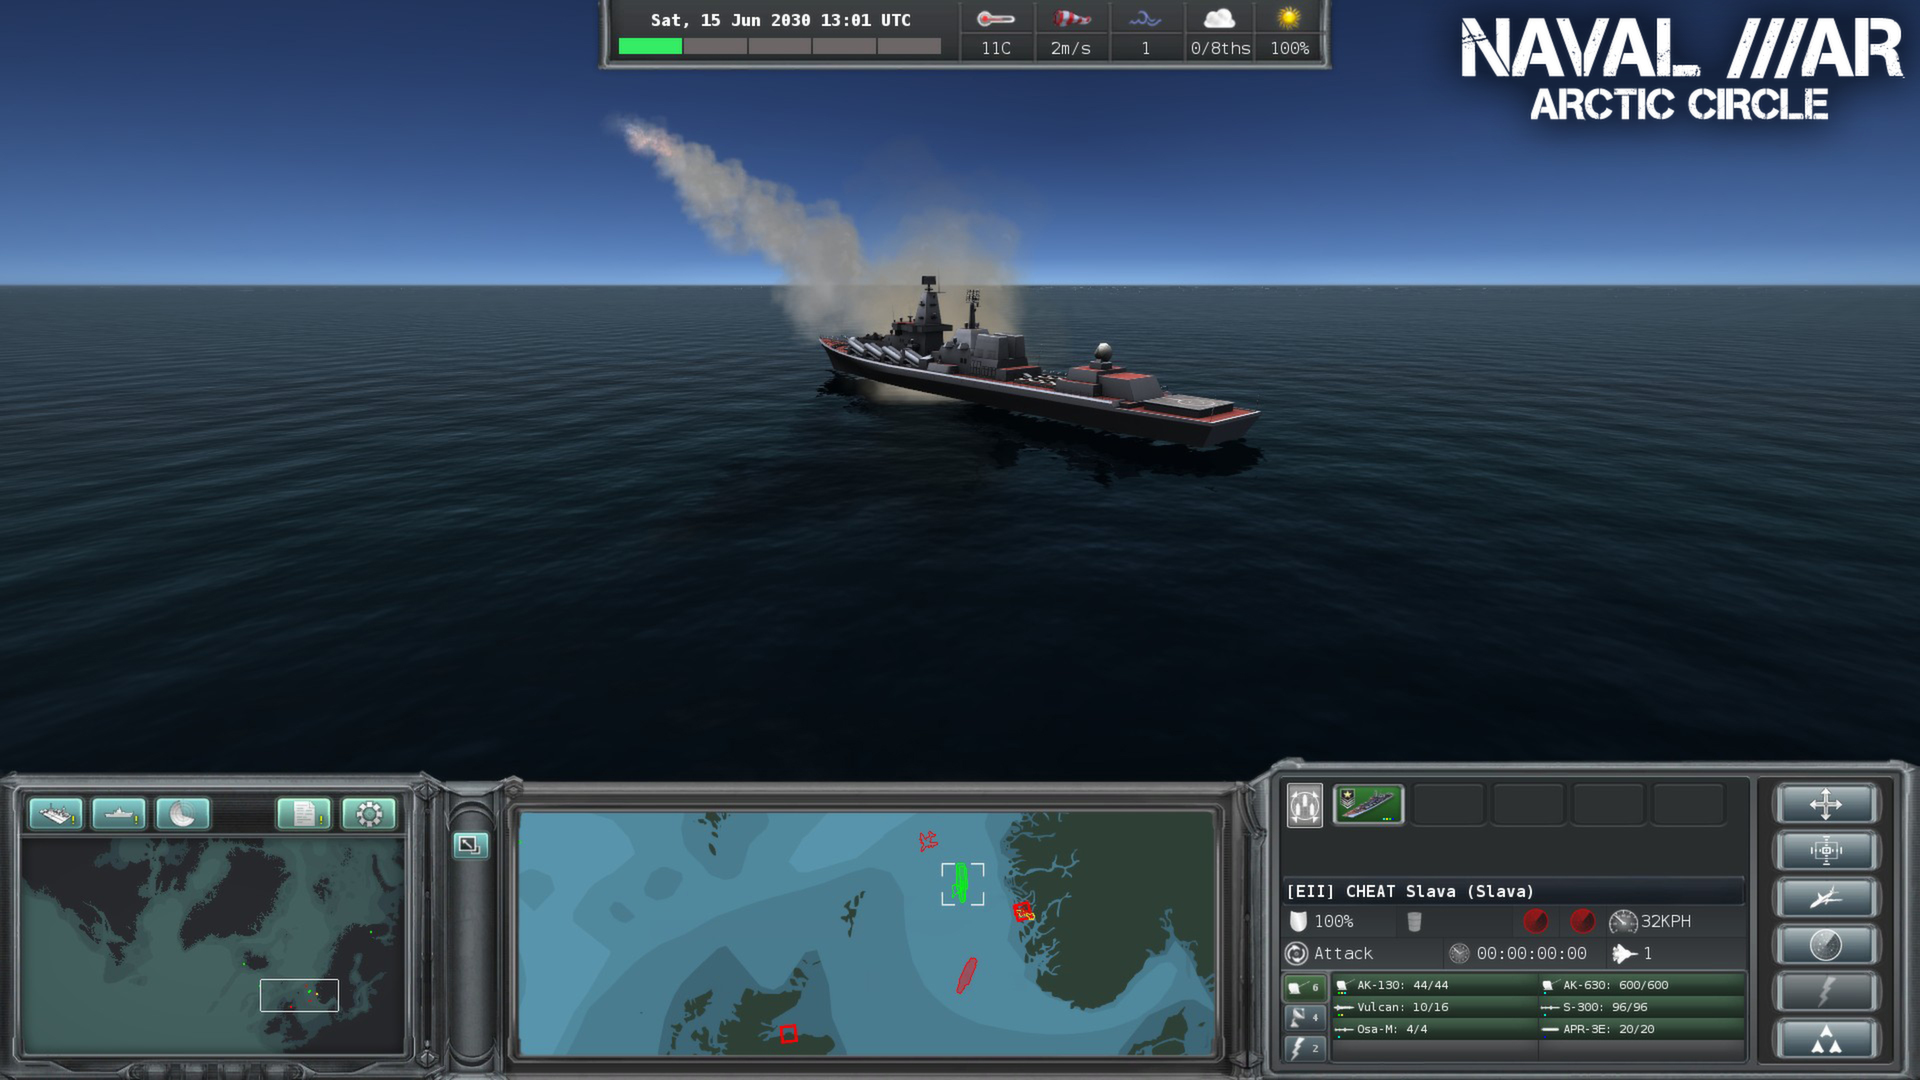 download naval war arctic circle full pc game